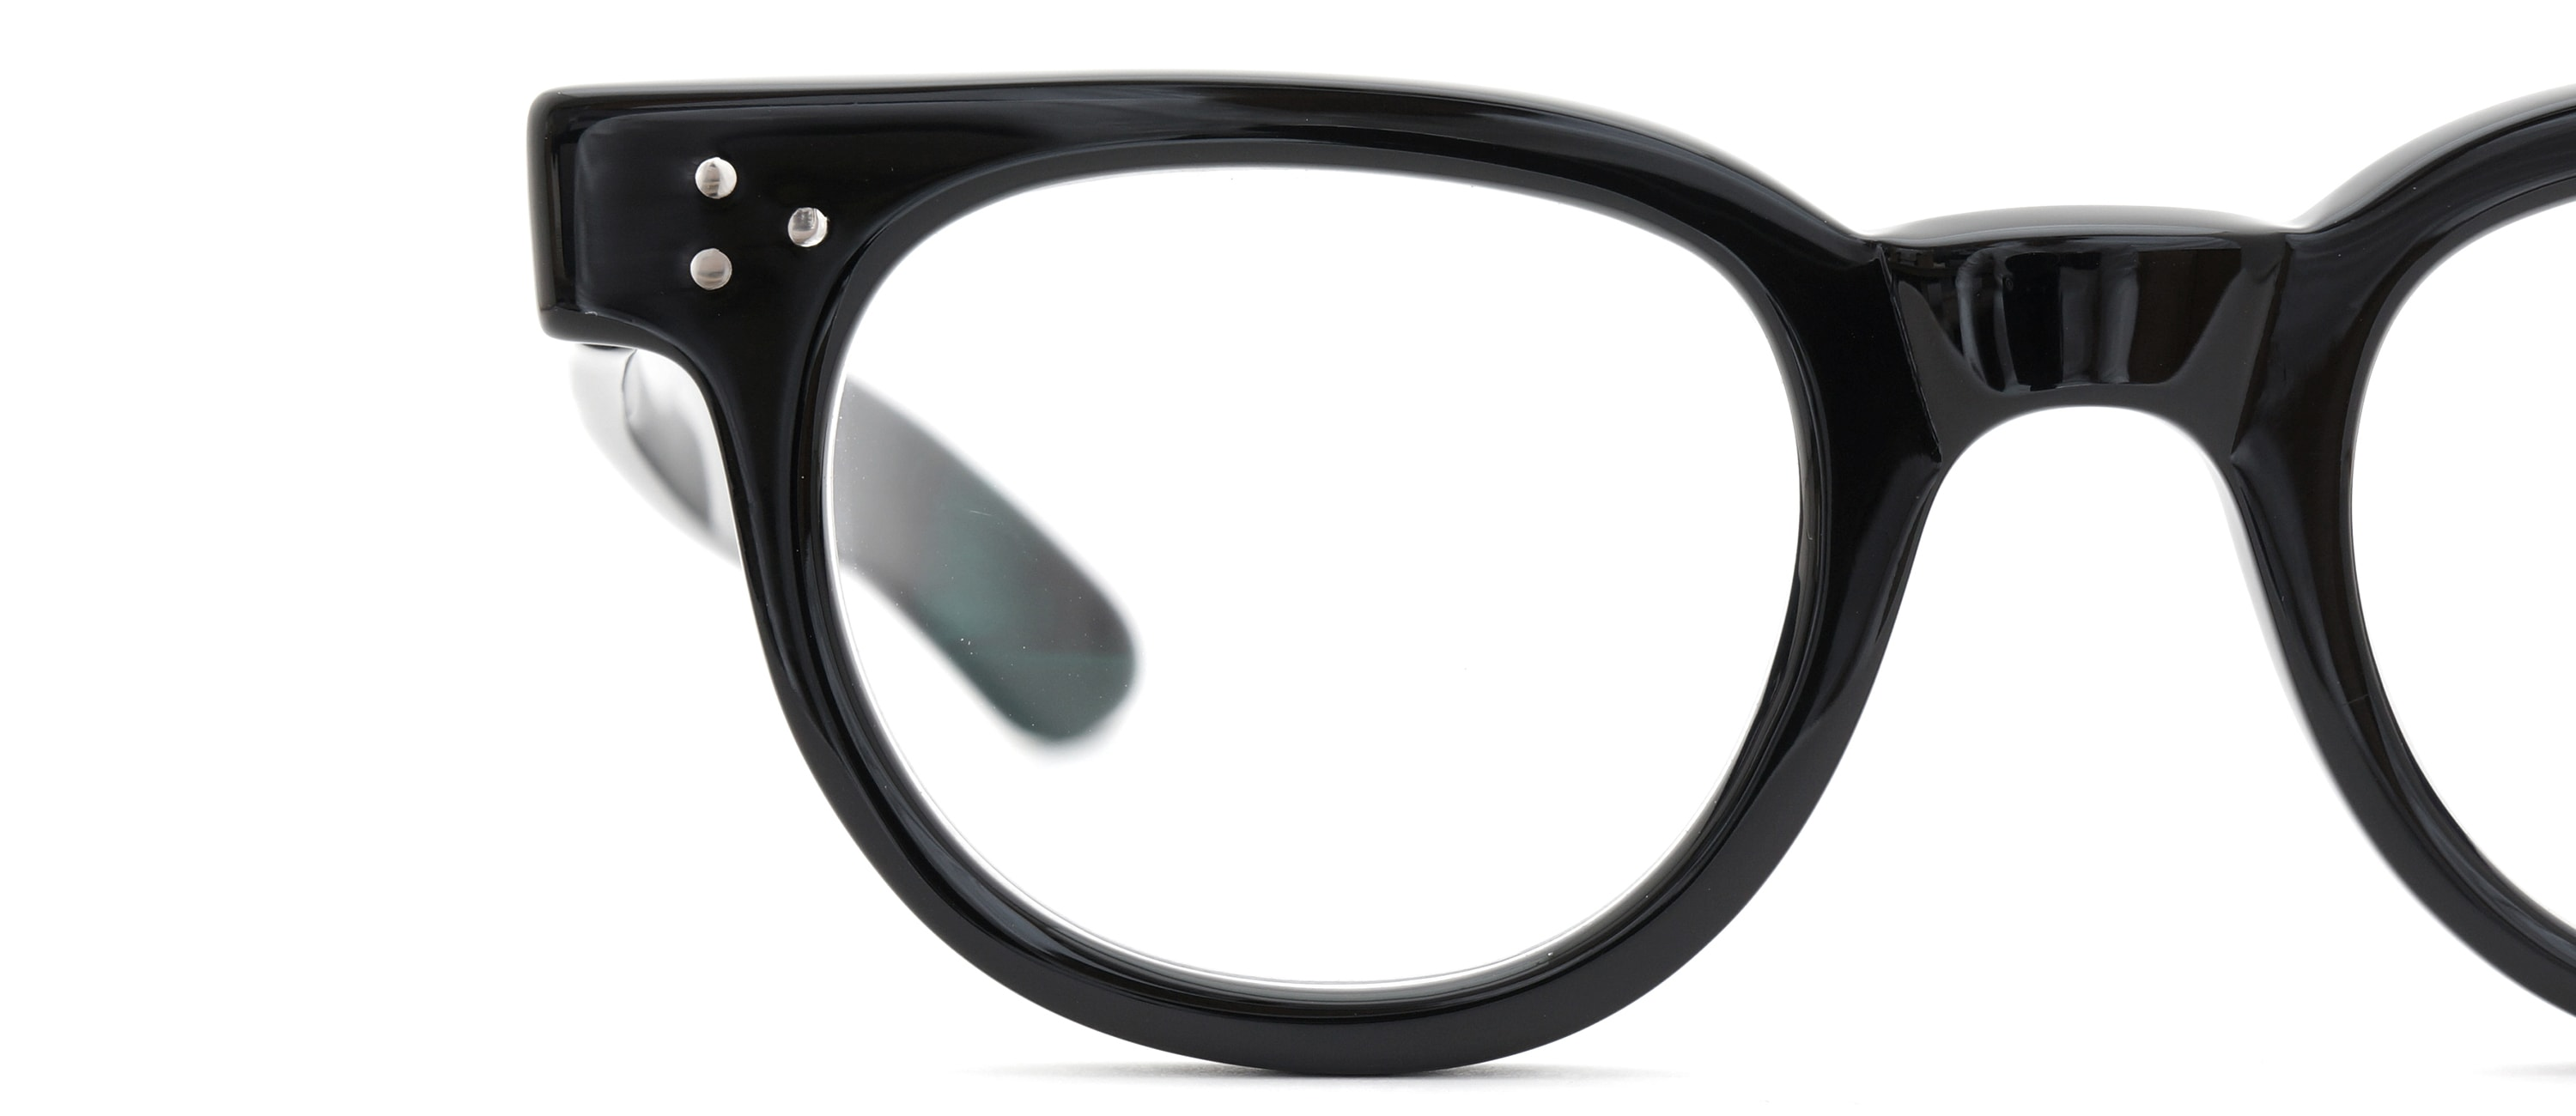 The Spectacle メガネ 1950s-70s TART OPTICAL FDR (FRAME USA) BLACK 44-24 イメージ18